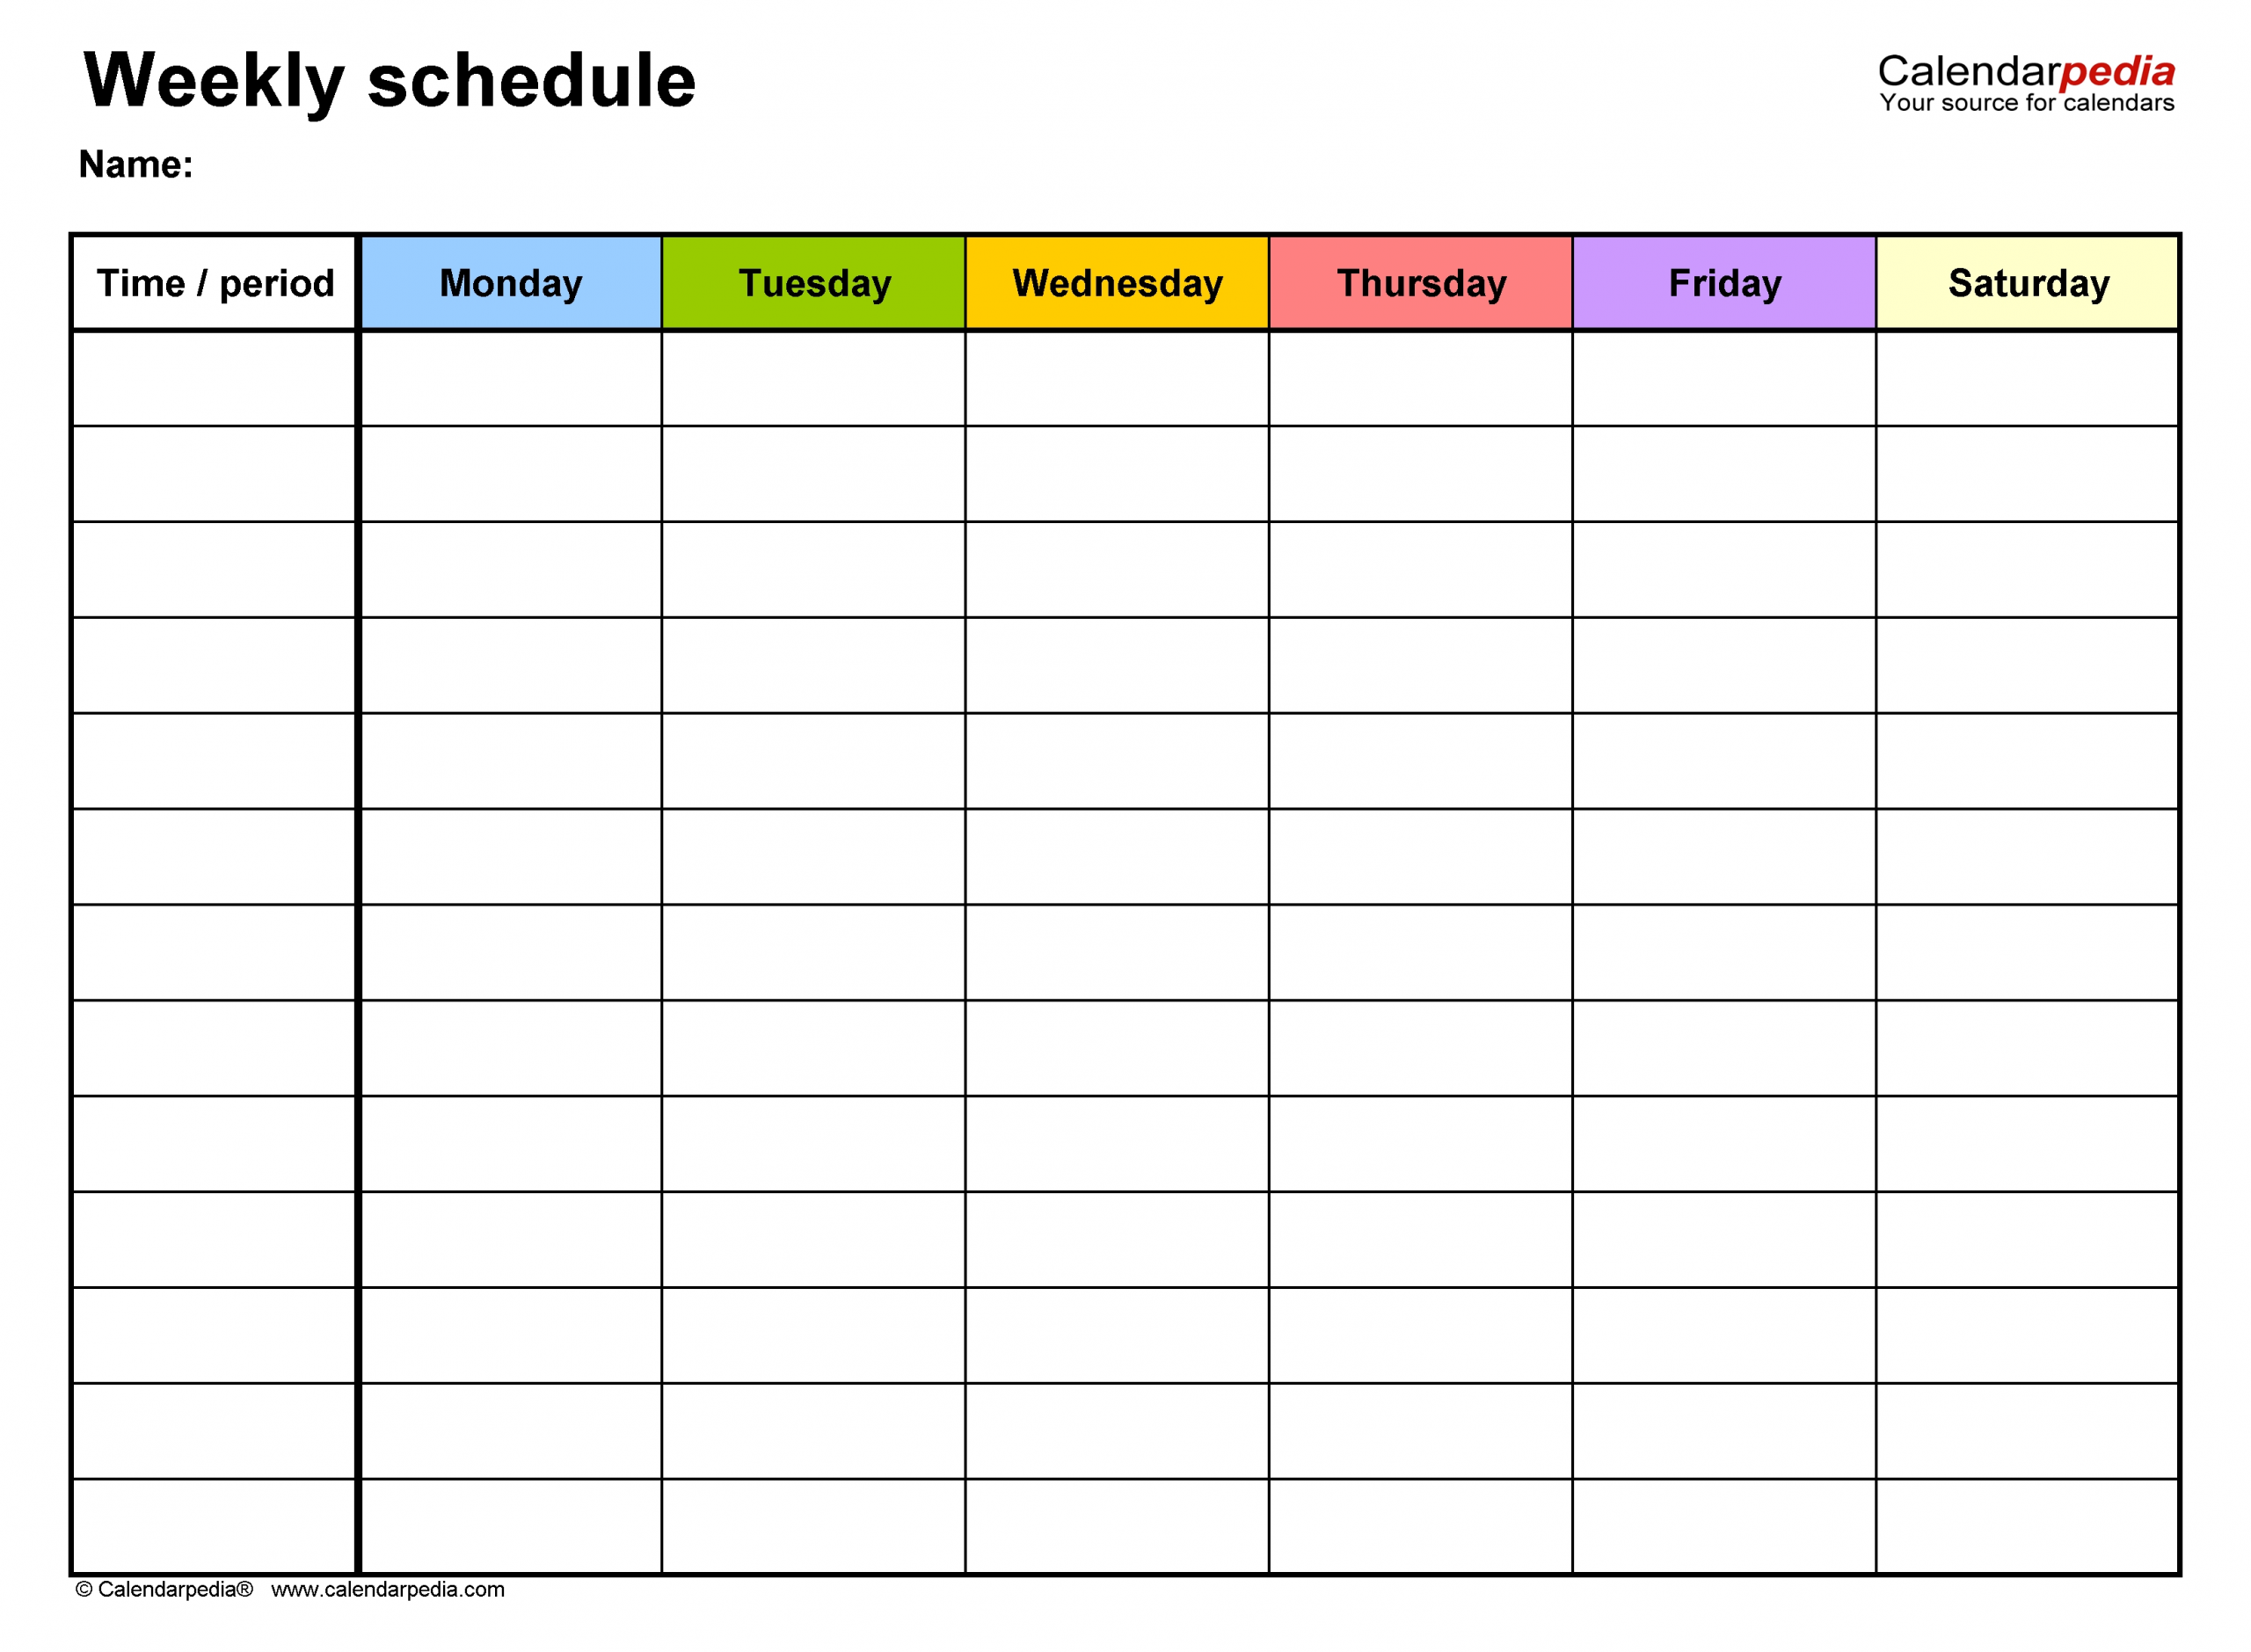 Free Weekly Schedule Templates For Excel - 18 Templates  Monthly Calendar Payment Excel Template